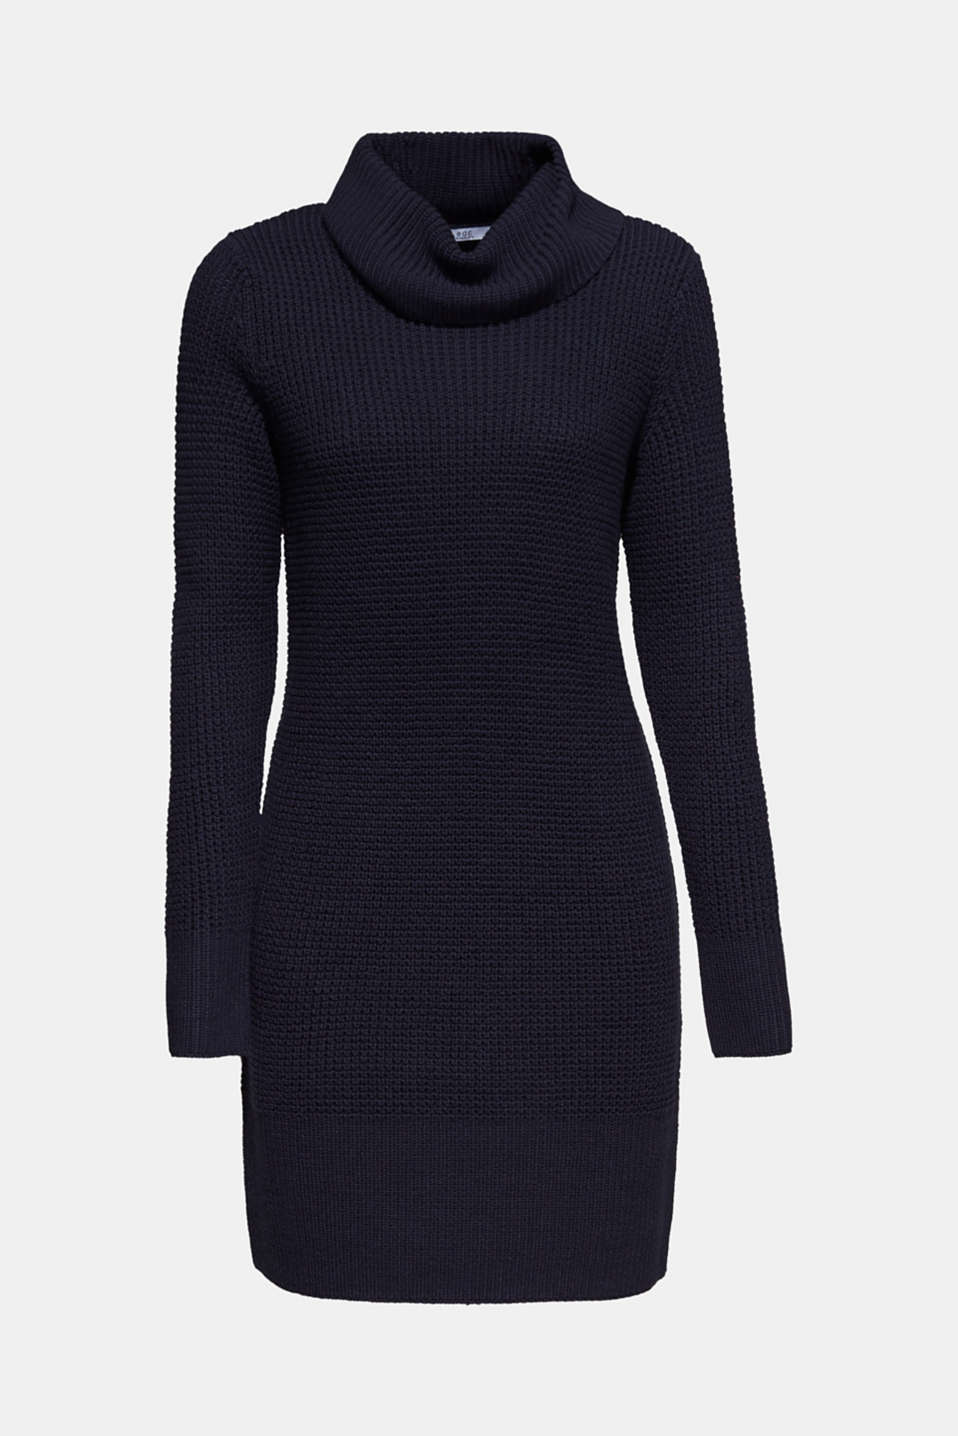 Dresses flat knitted, NAVY, detail image number 8